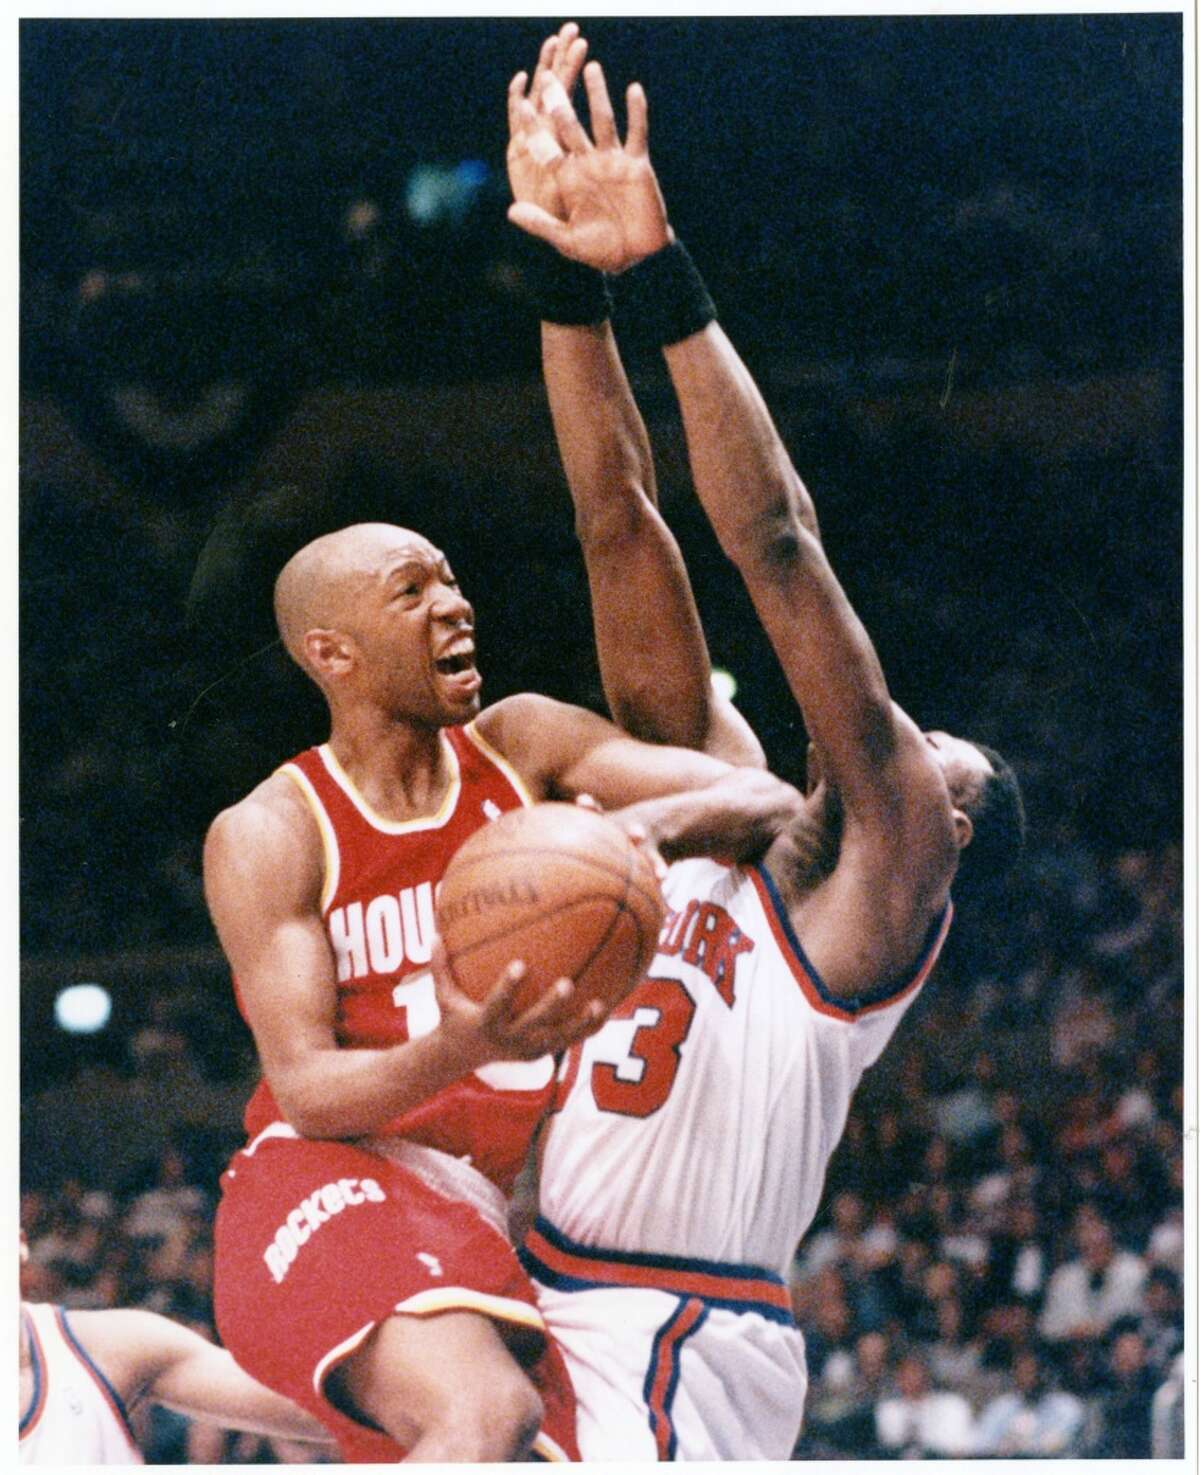 1994: Sam Cassell, Rockets He established himself as a clutch player as a rookie. In Game 3 of the 1994 FInals at New York, Cassell buried a 3-pointer in the final minute to give the Rockets a one-point lead and eventual win that restored Houston's home-court advantage in a series the Rockets won in seven games for their first title.